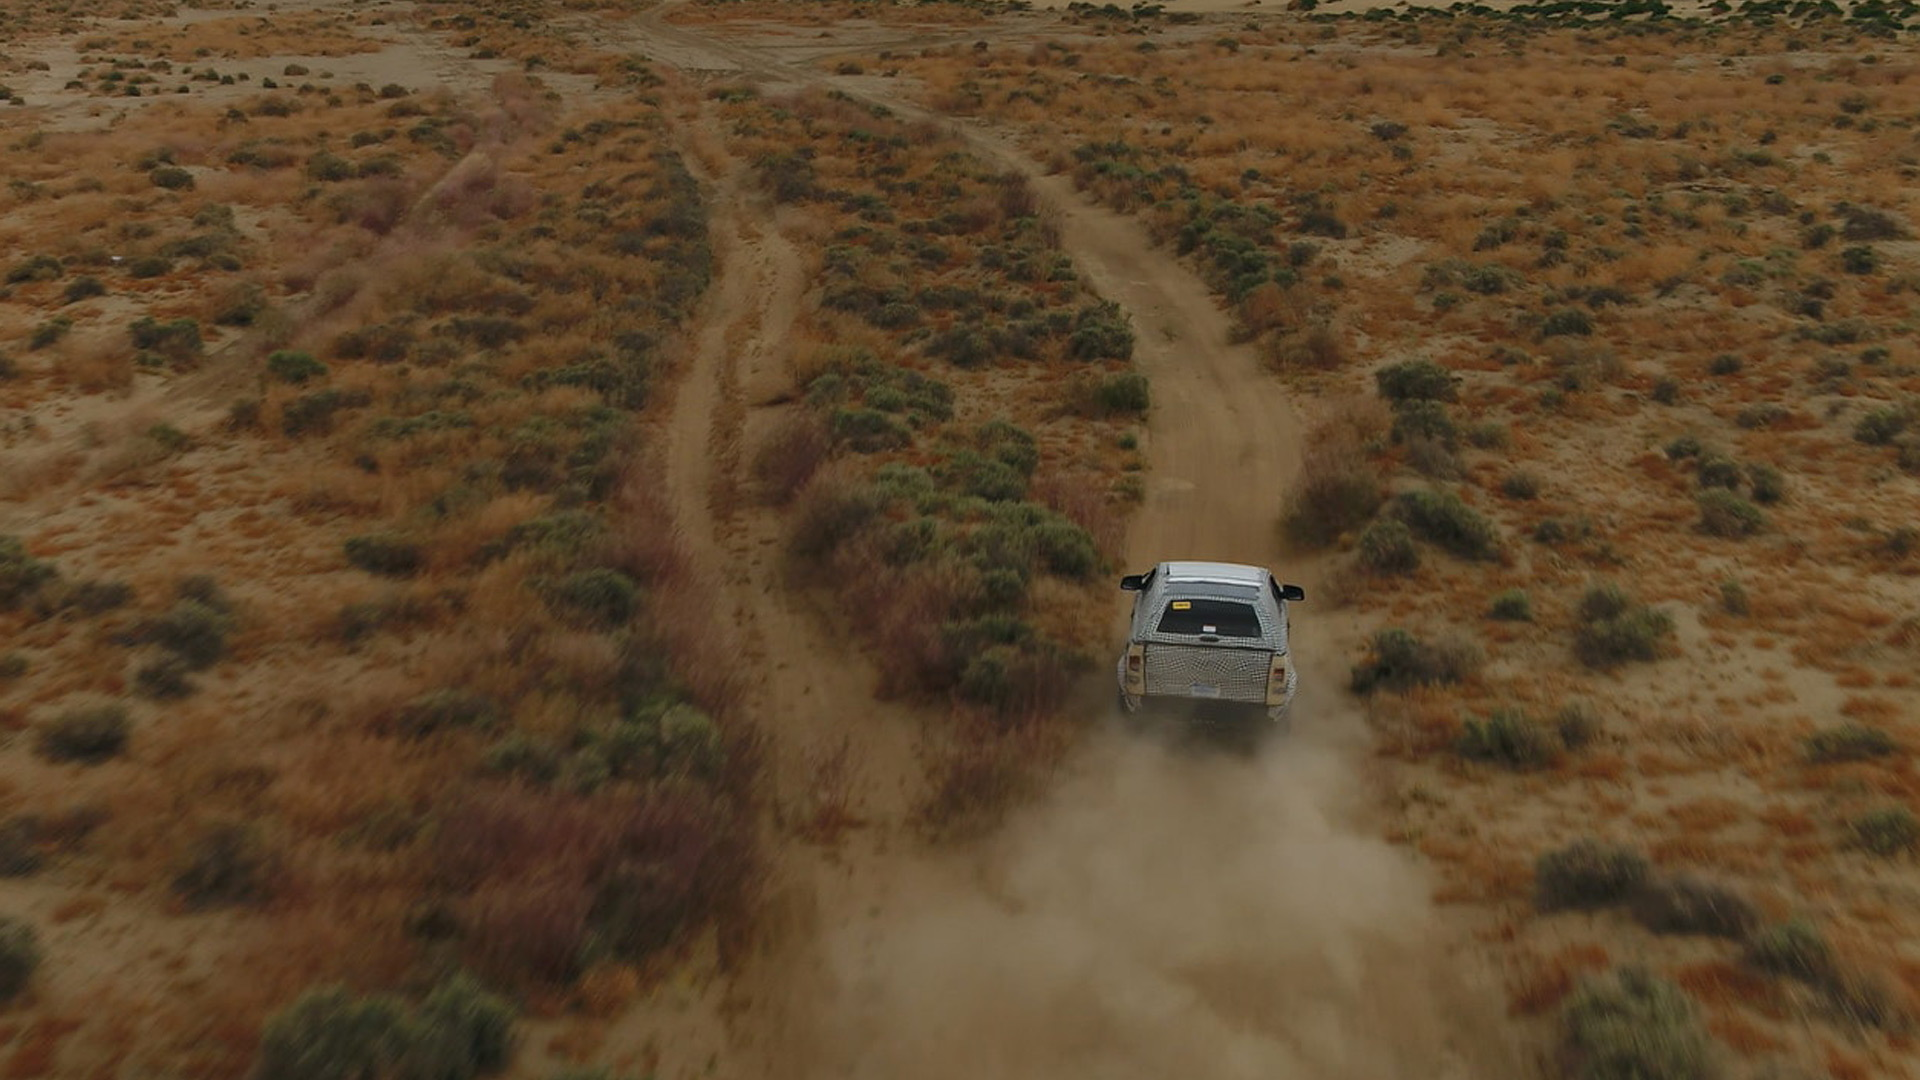 Teaser for 2021 Ford Bronco debuting in spring 2020